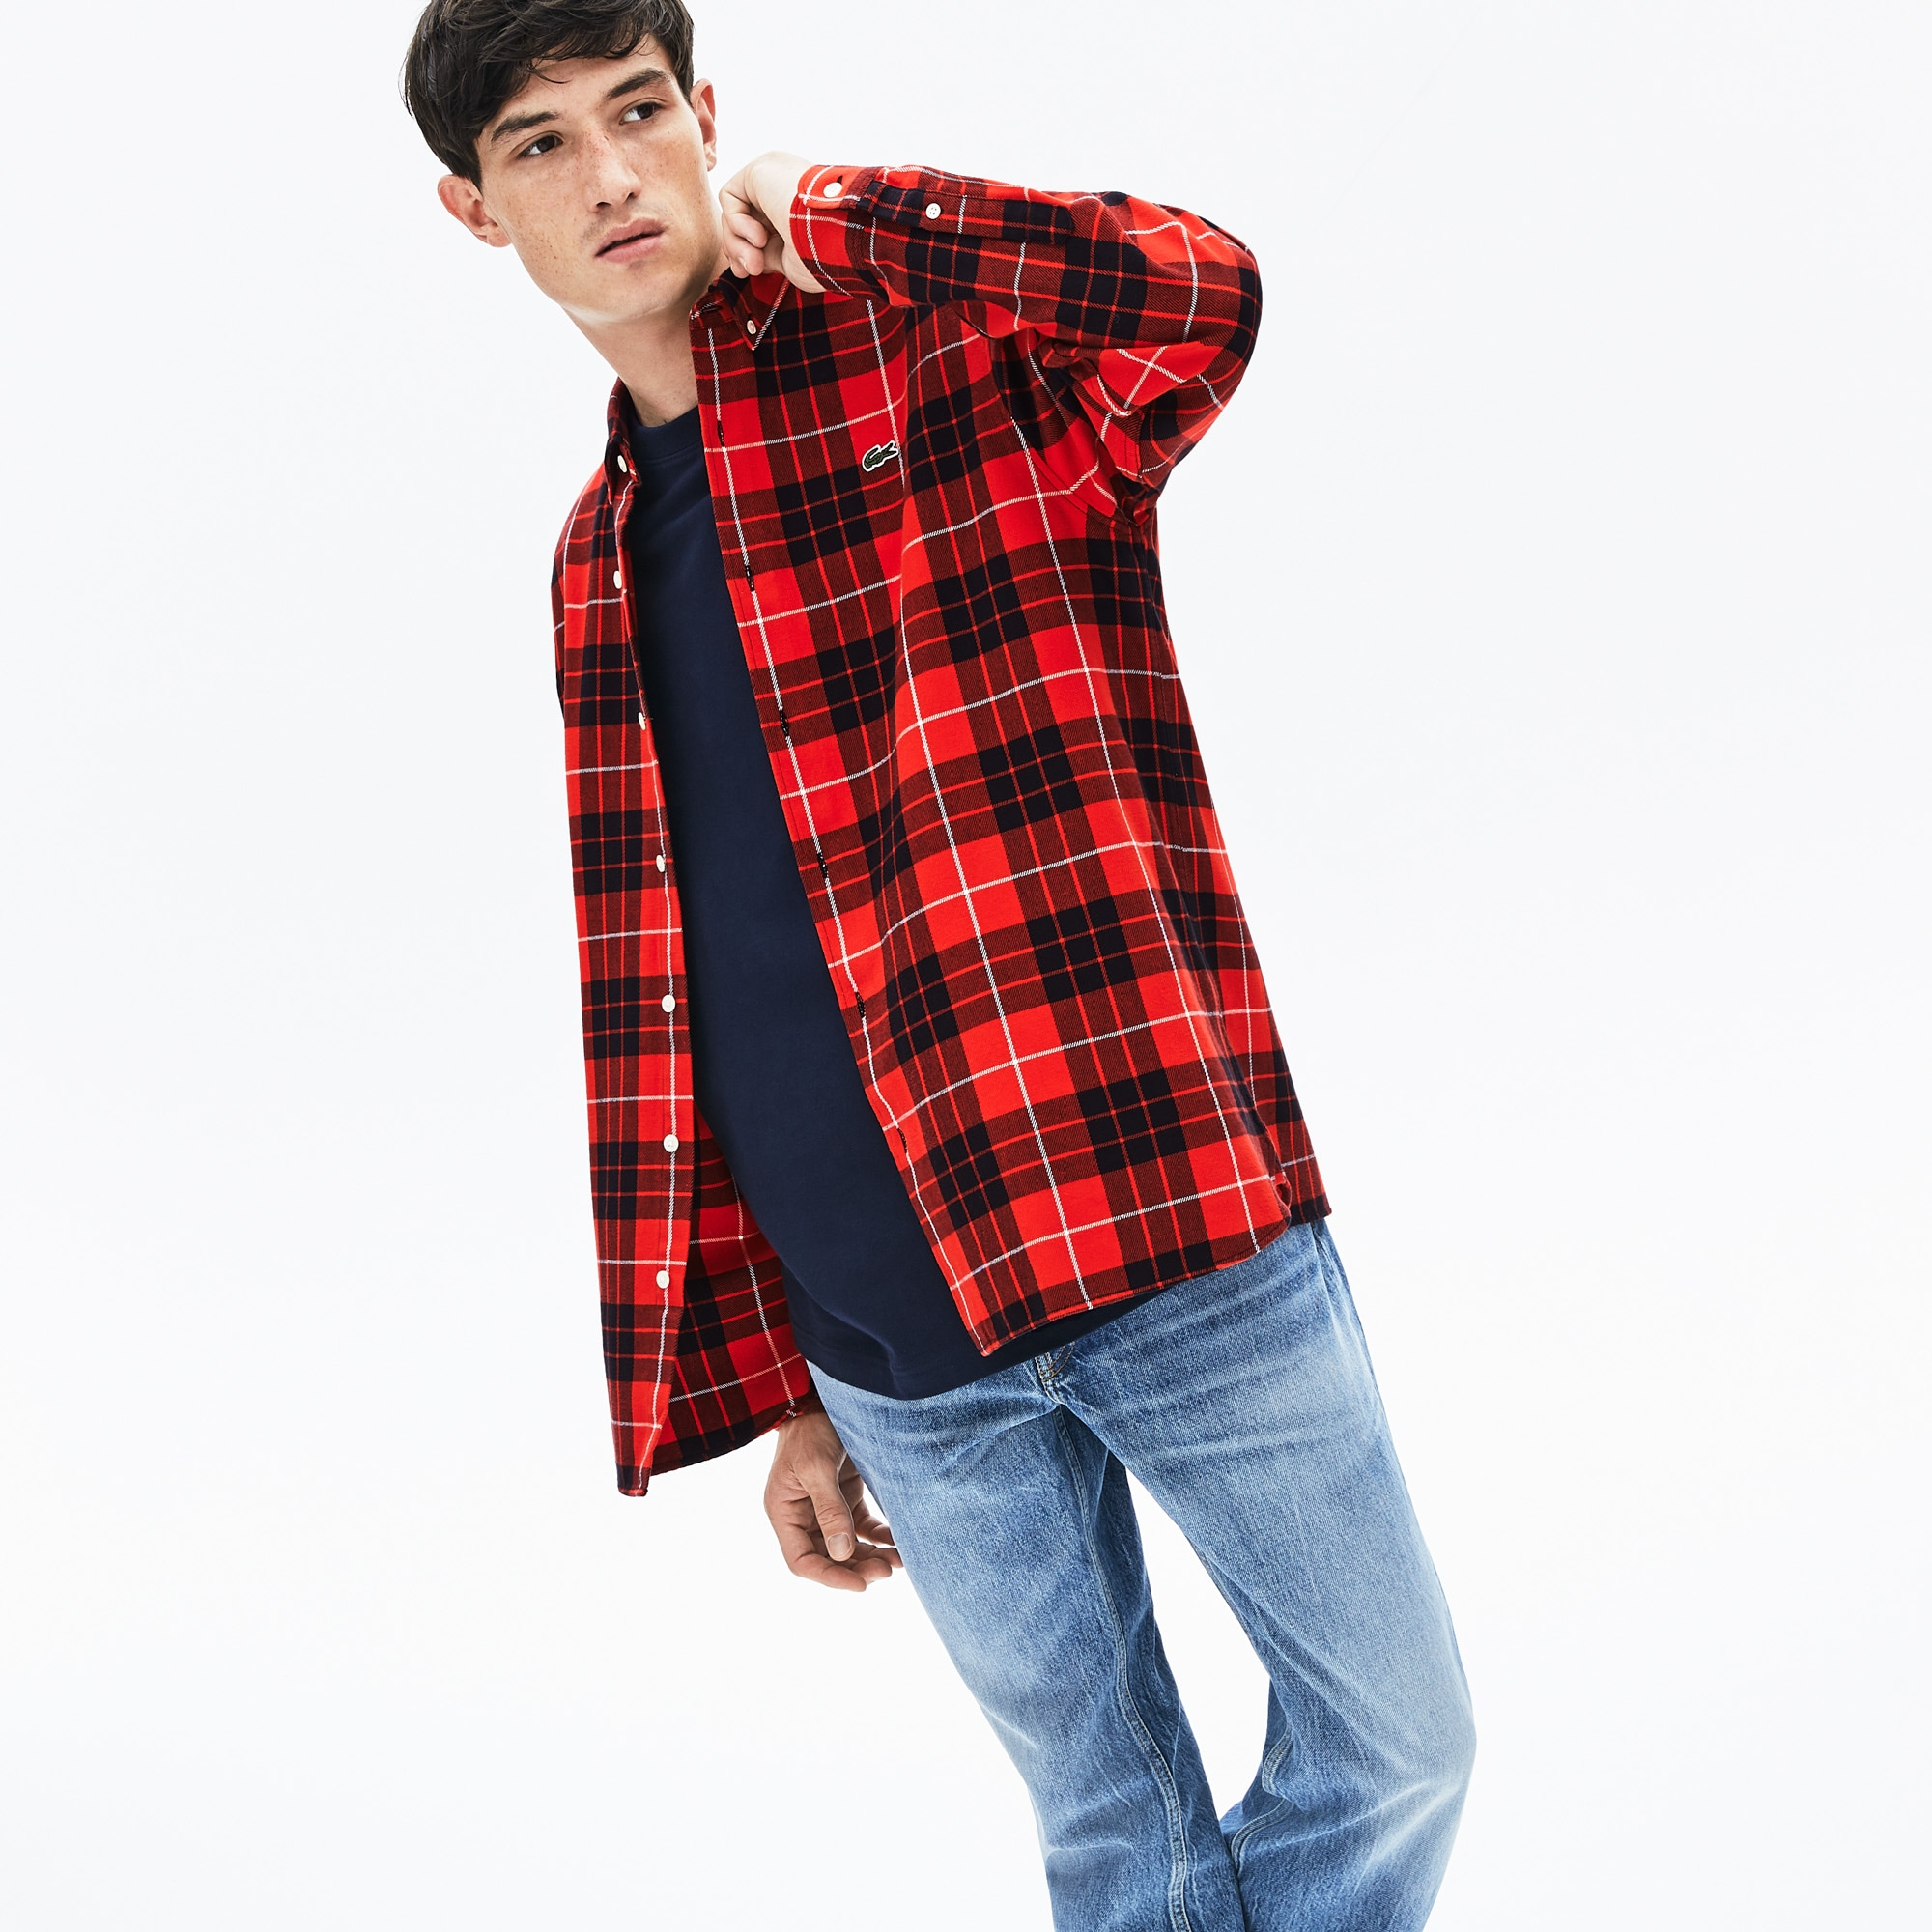 Lacoste Tops Men's LIVE Boxy Fit Check Flannel Shirt